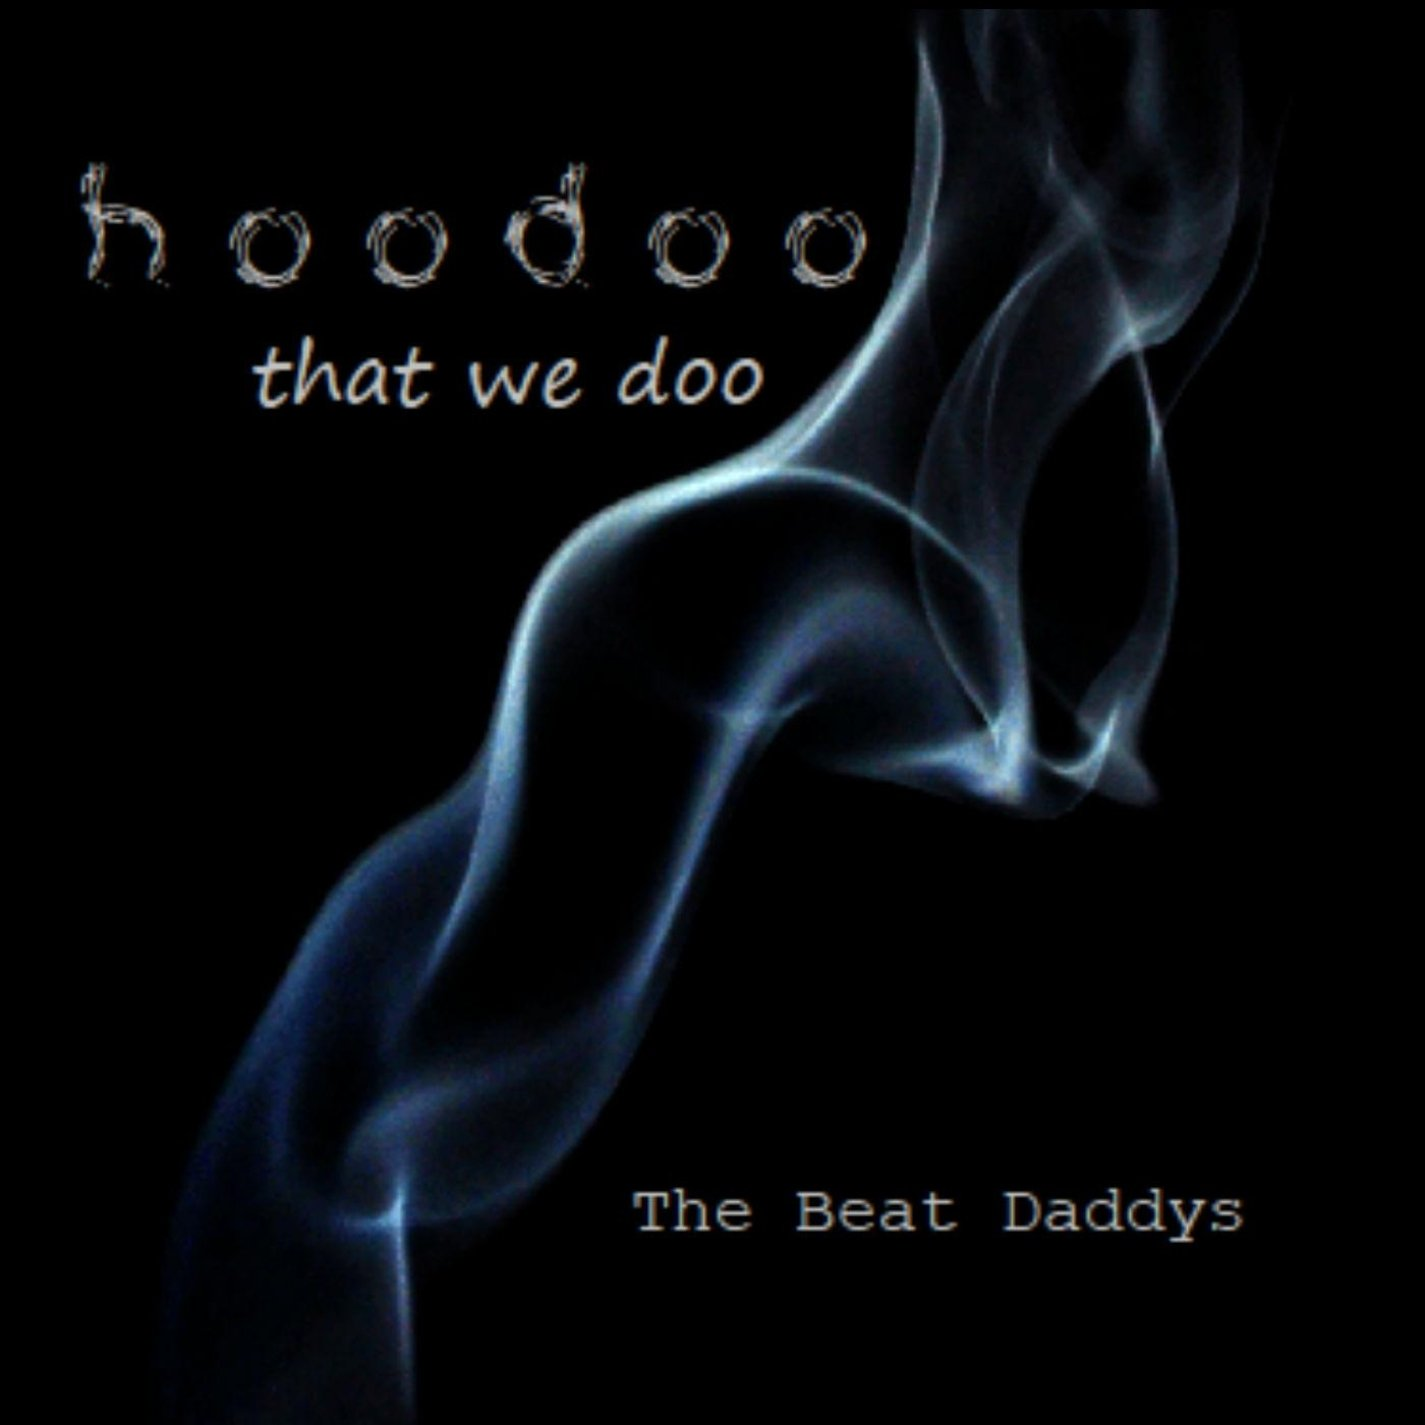 THE BEAT DADDYS Hoodoo That We Doo